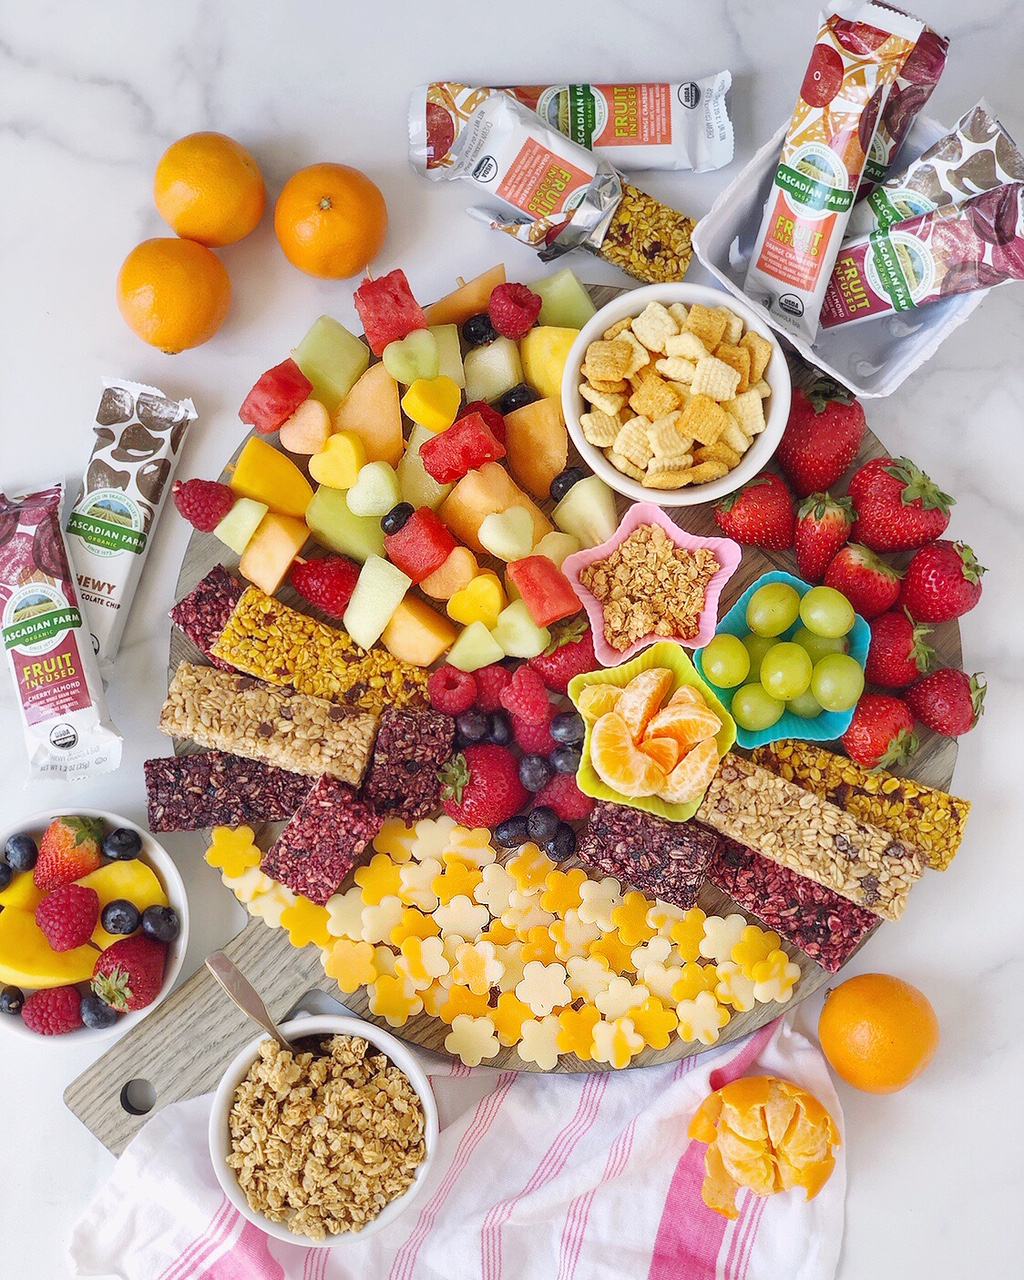 Kid Friendly Snack Time Spread And Toddler Grazing Board Ideas